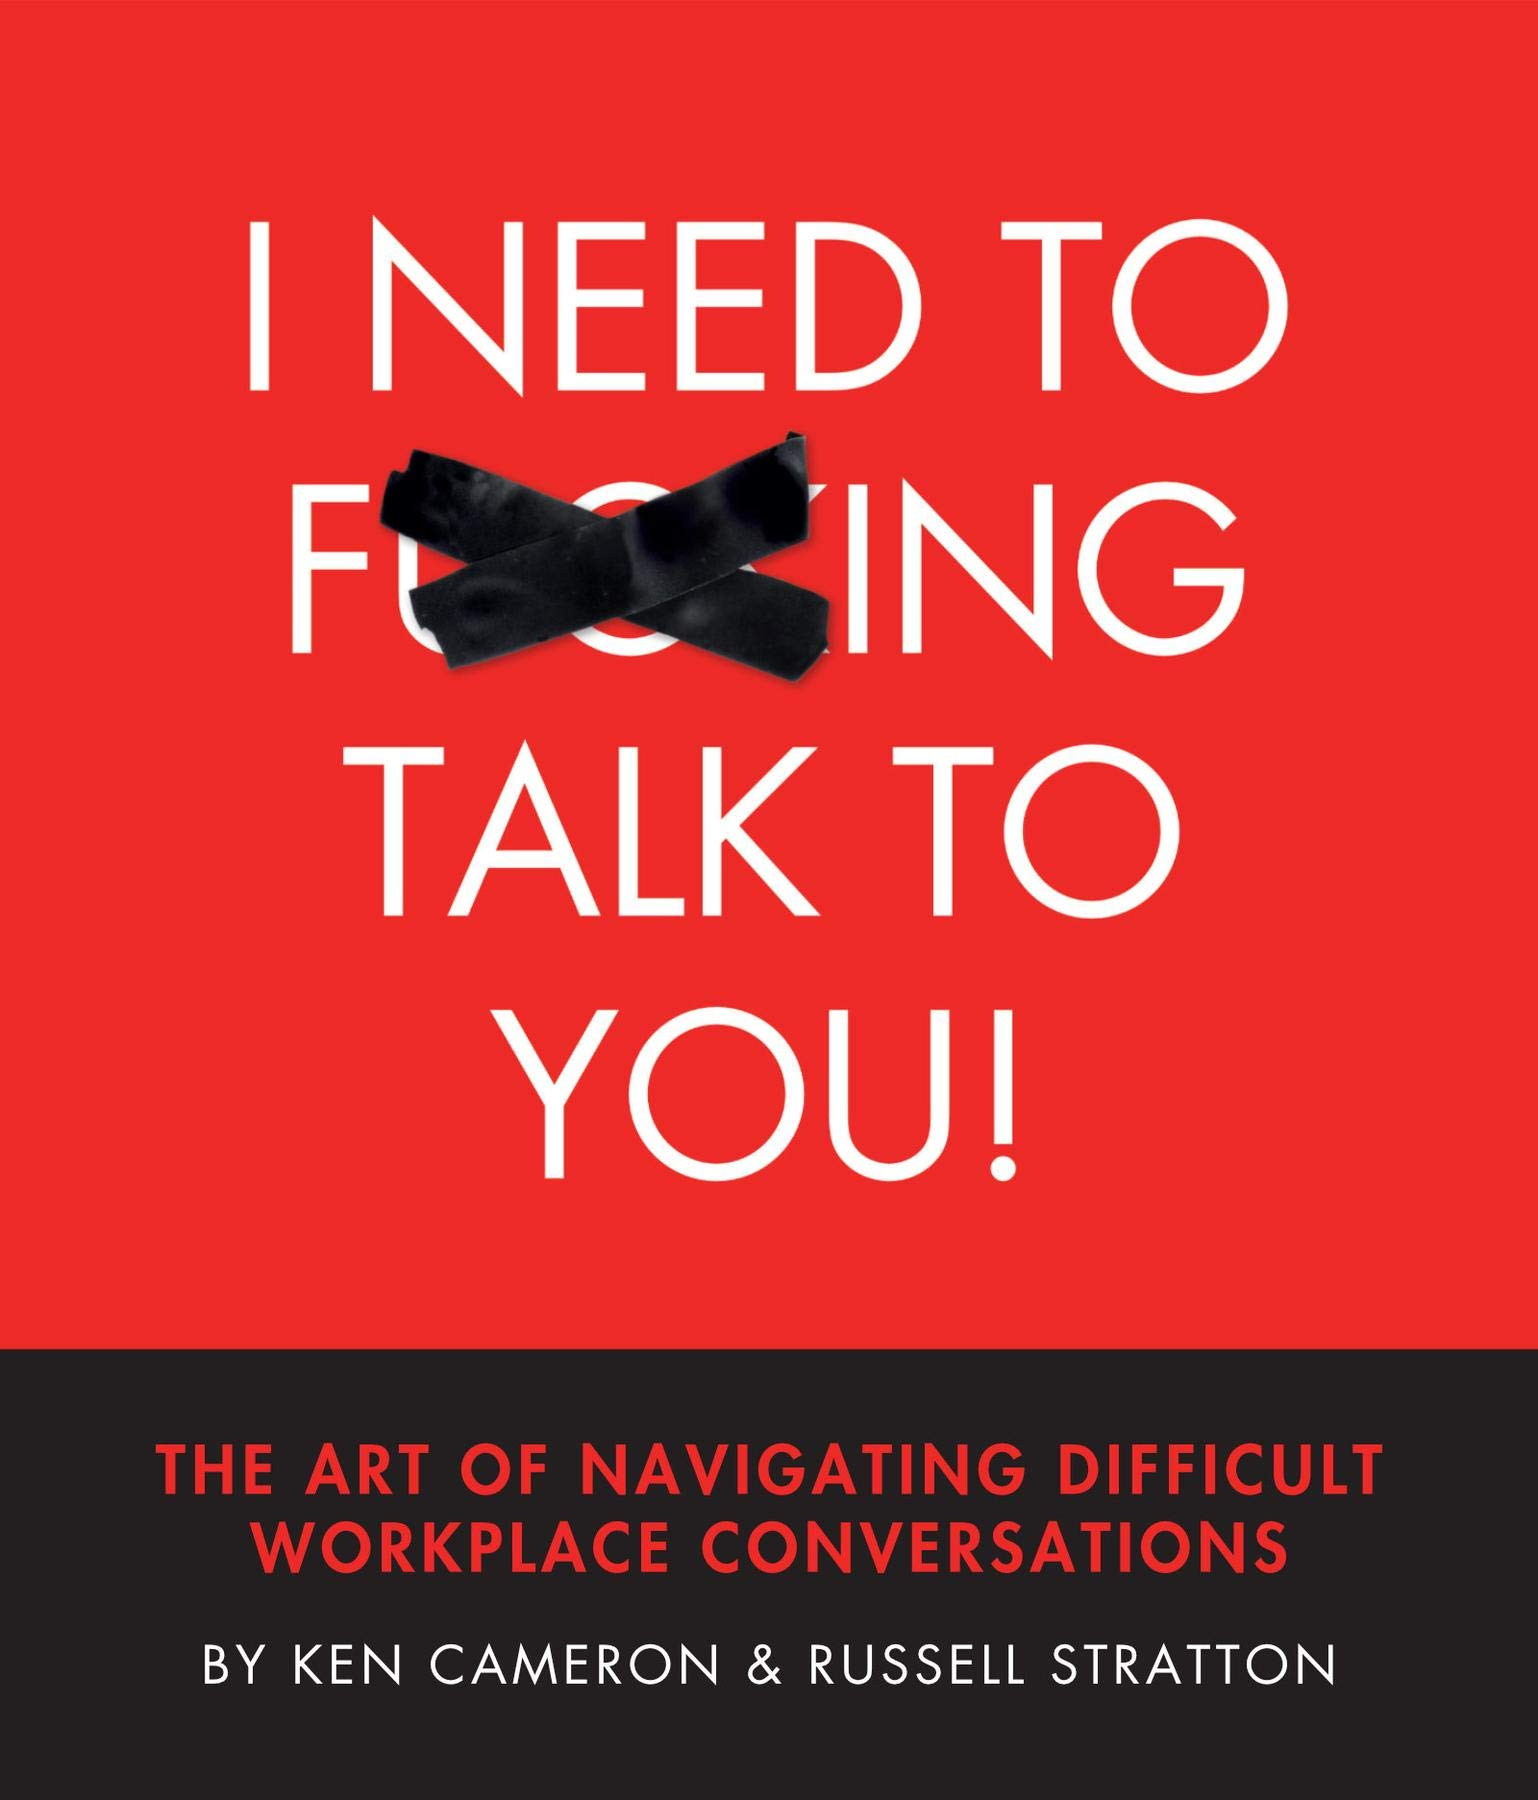 I Need to F***ing Talk To You: THE ART OF NAVIGATING DIFFICULT WORKPLACE CONVERSATIONS